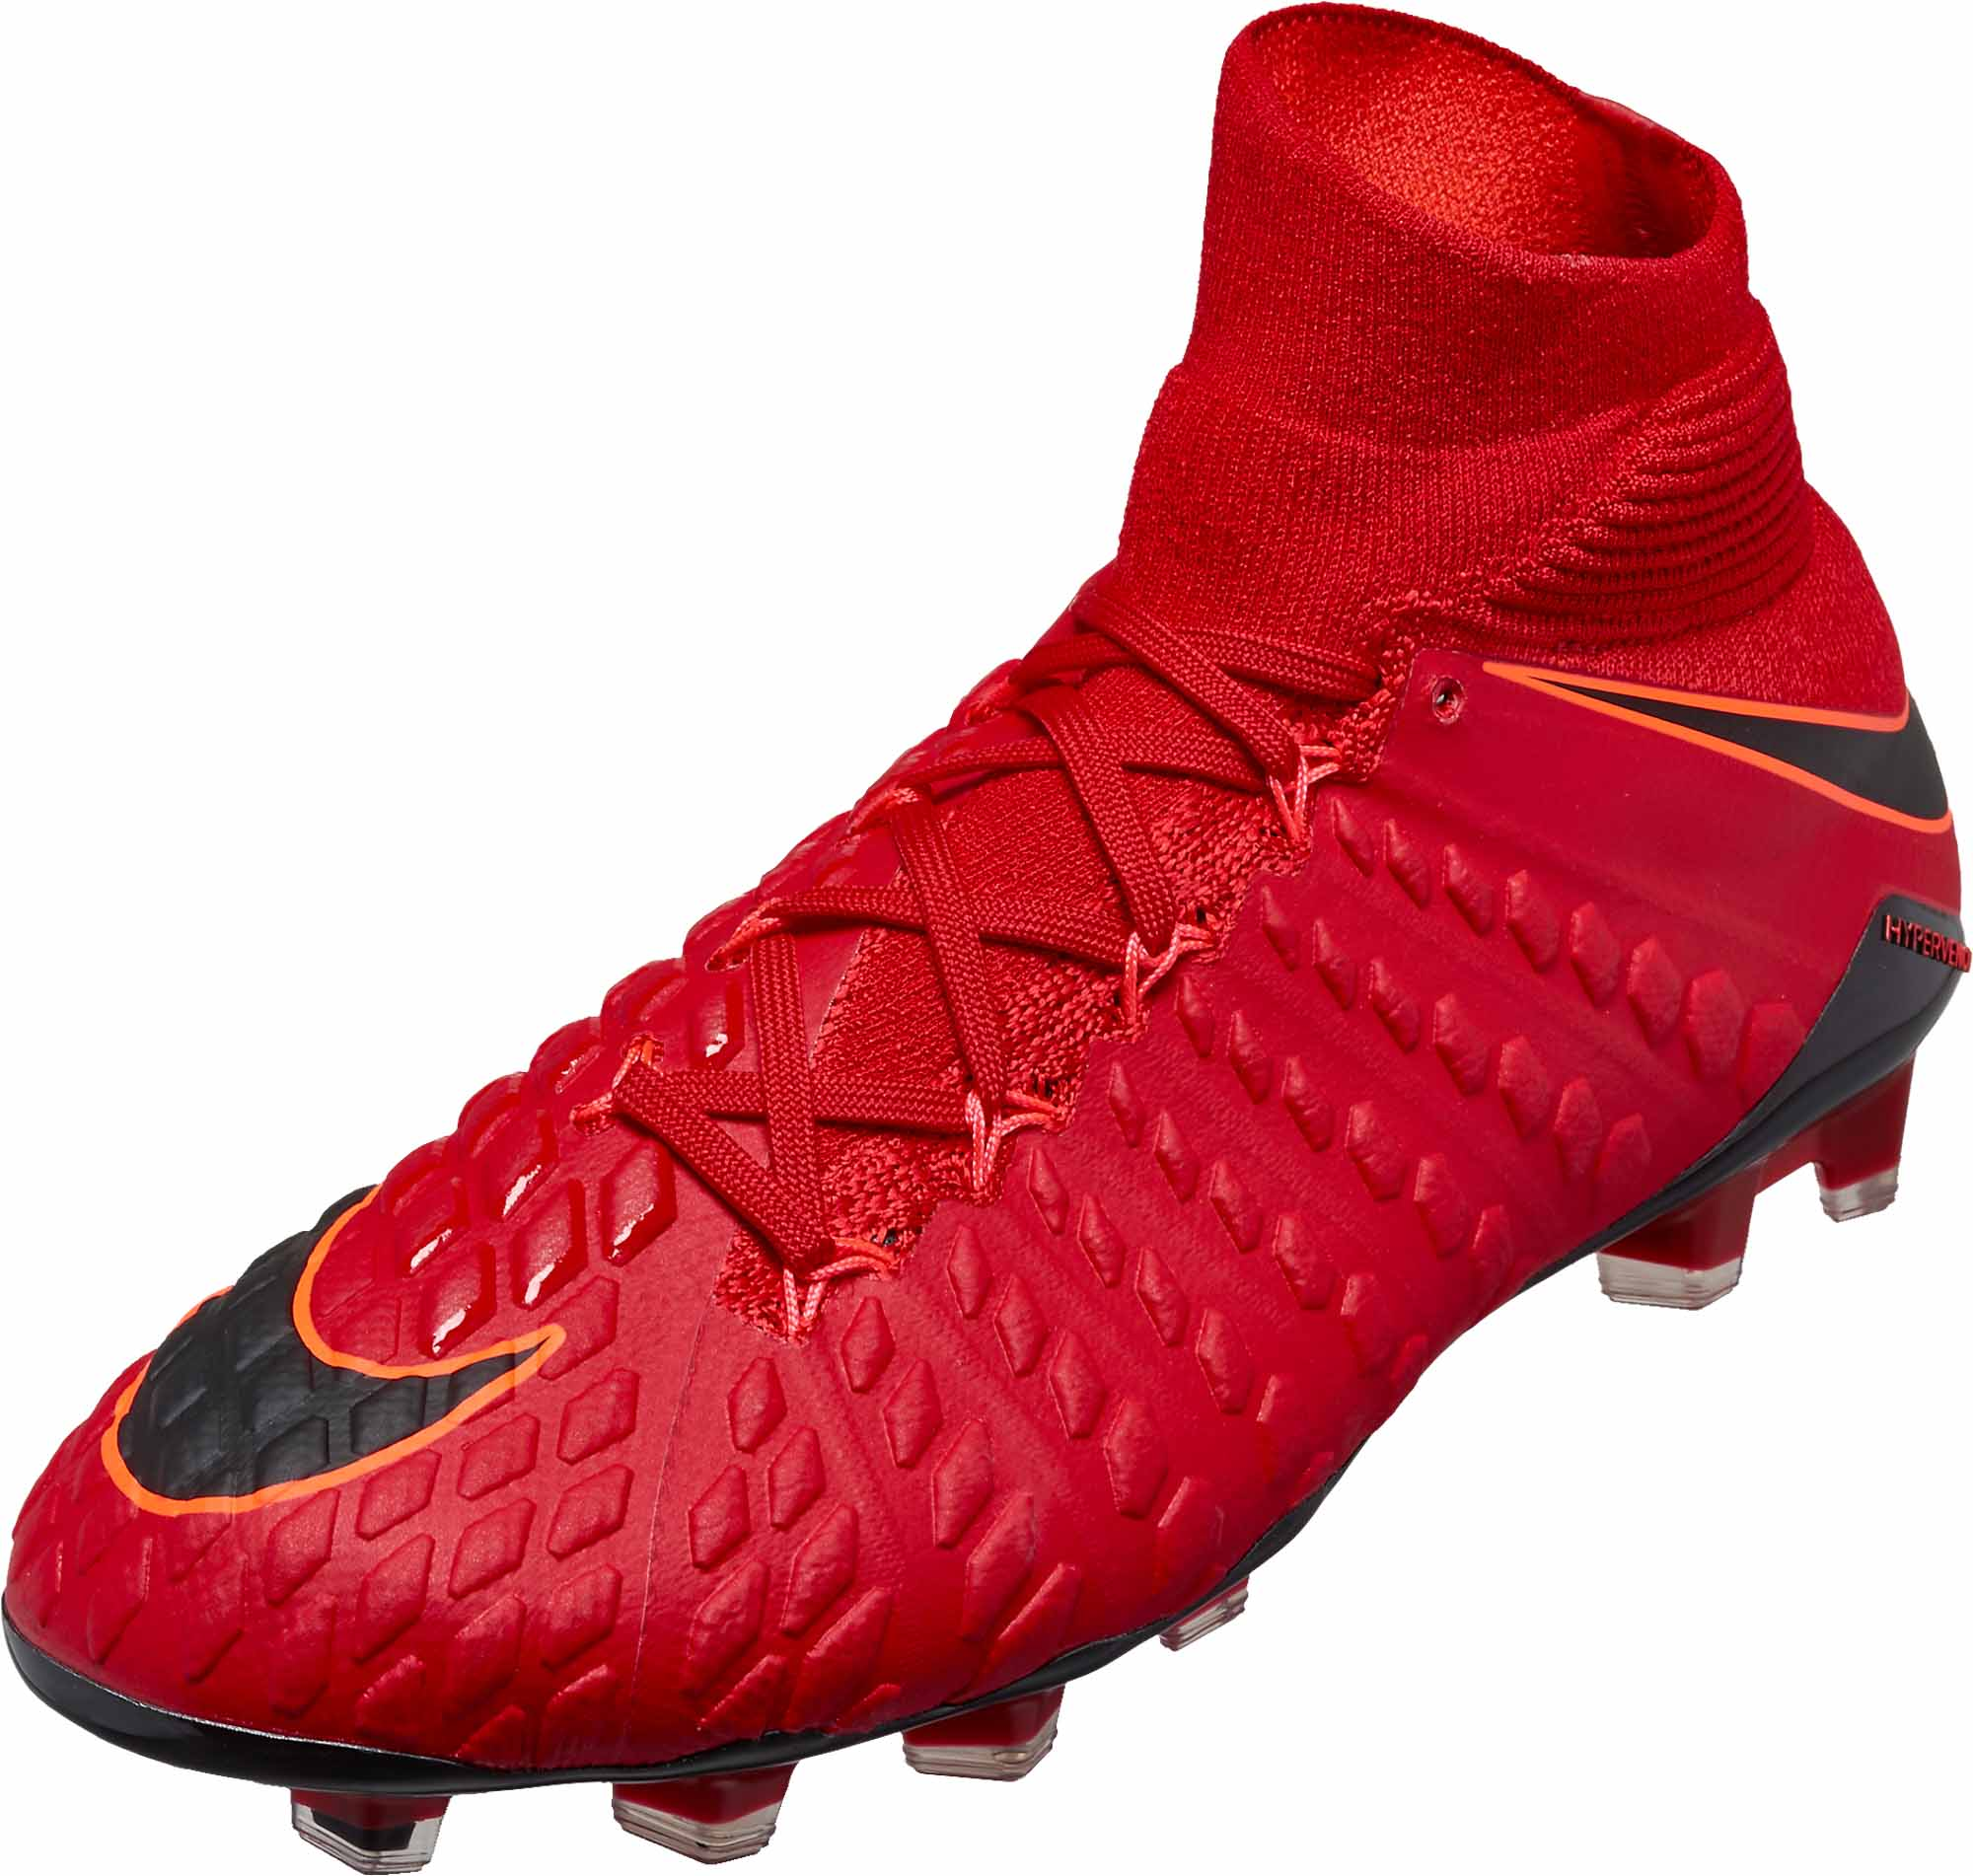 sneakers for cheap 7aa34 31b8f Nike Hypervenom Phantom III DF FG – University Red   Black